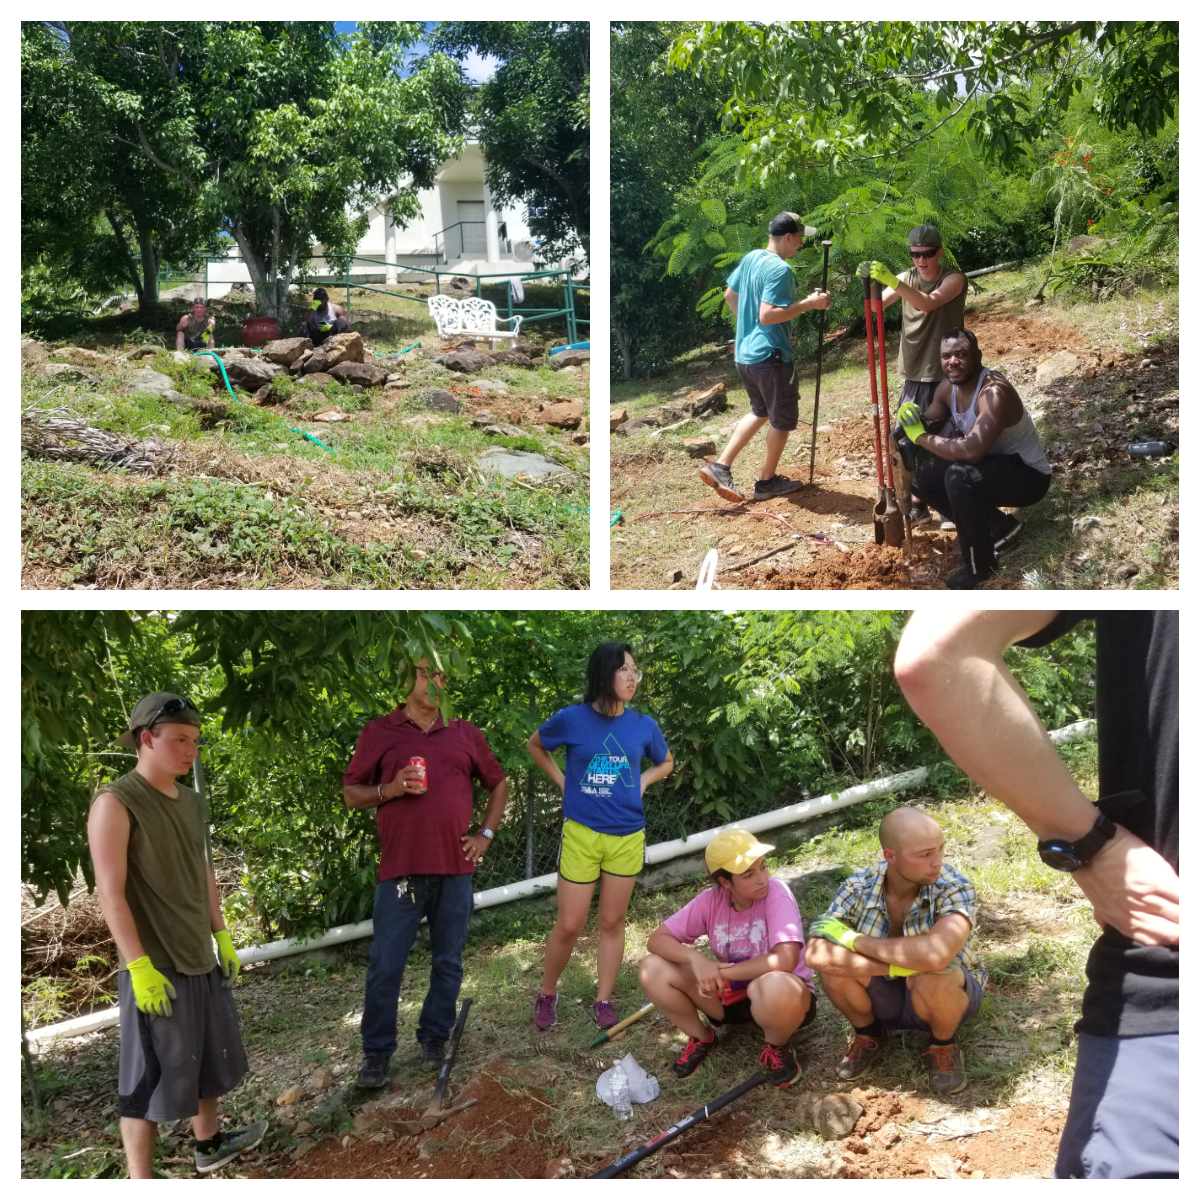 Top Left: Oakley and Lancer take a break after digging. Top Right: David, Oakley and Lancer hard at work. Bottom: Mr. Bornn and the UAA AE club have a quick meeting